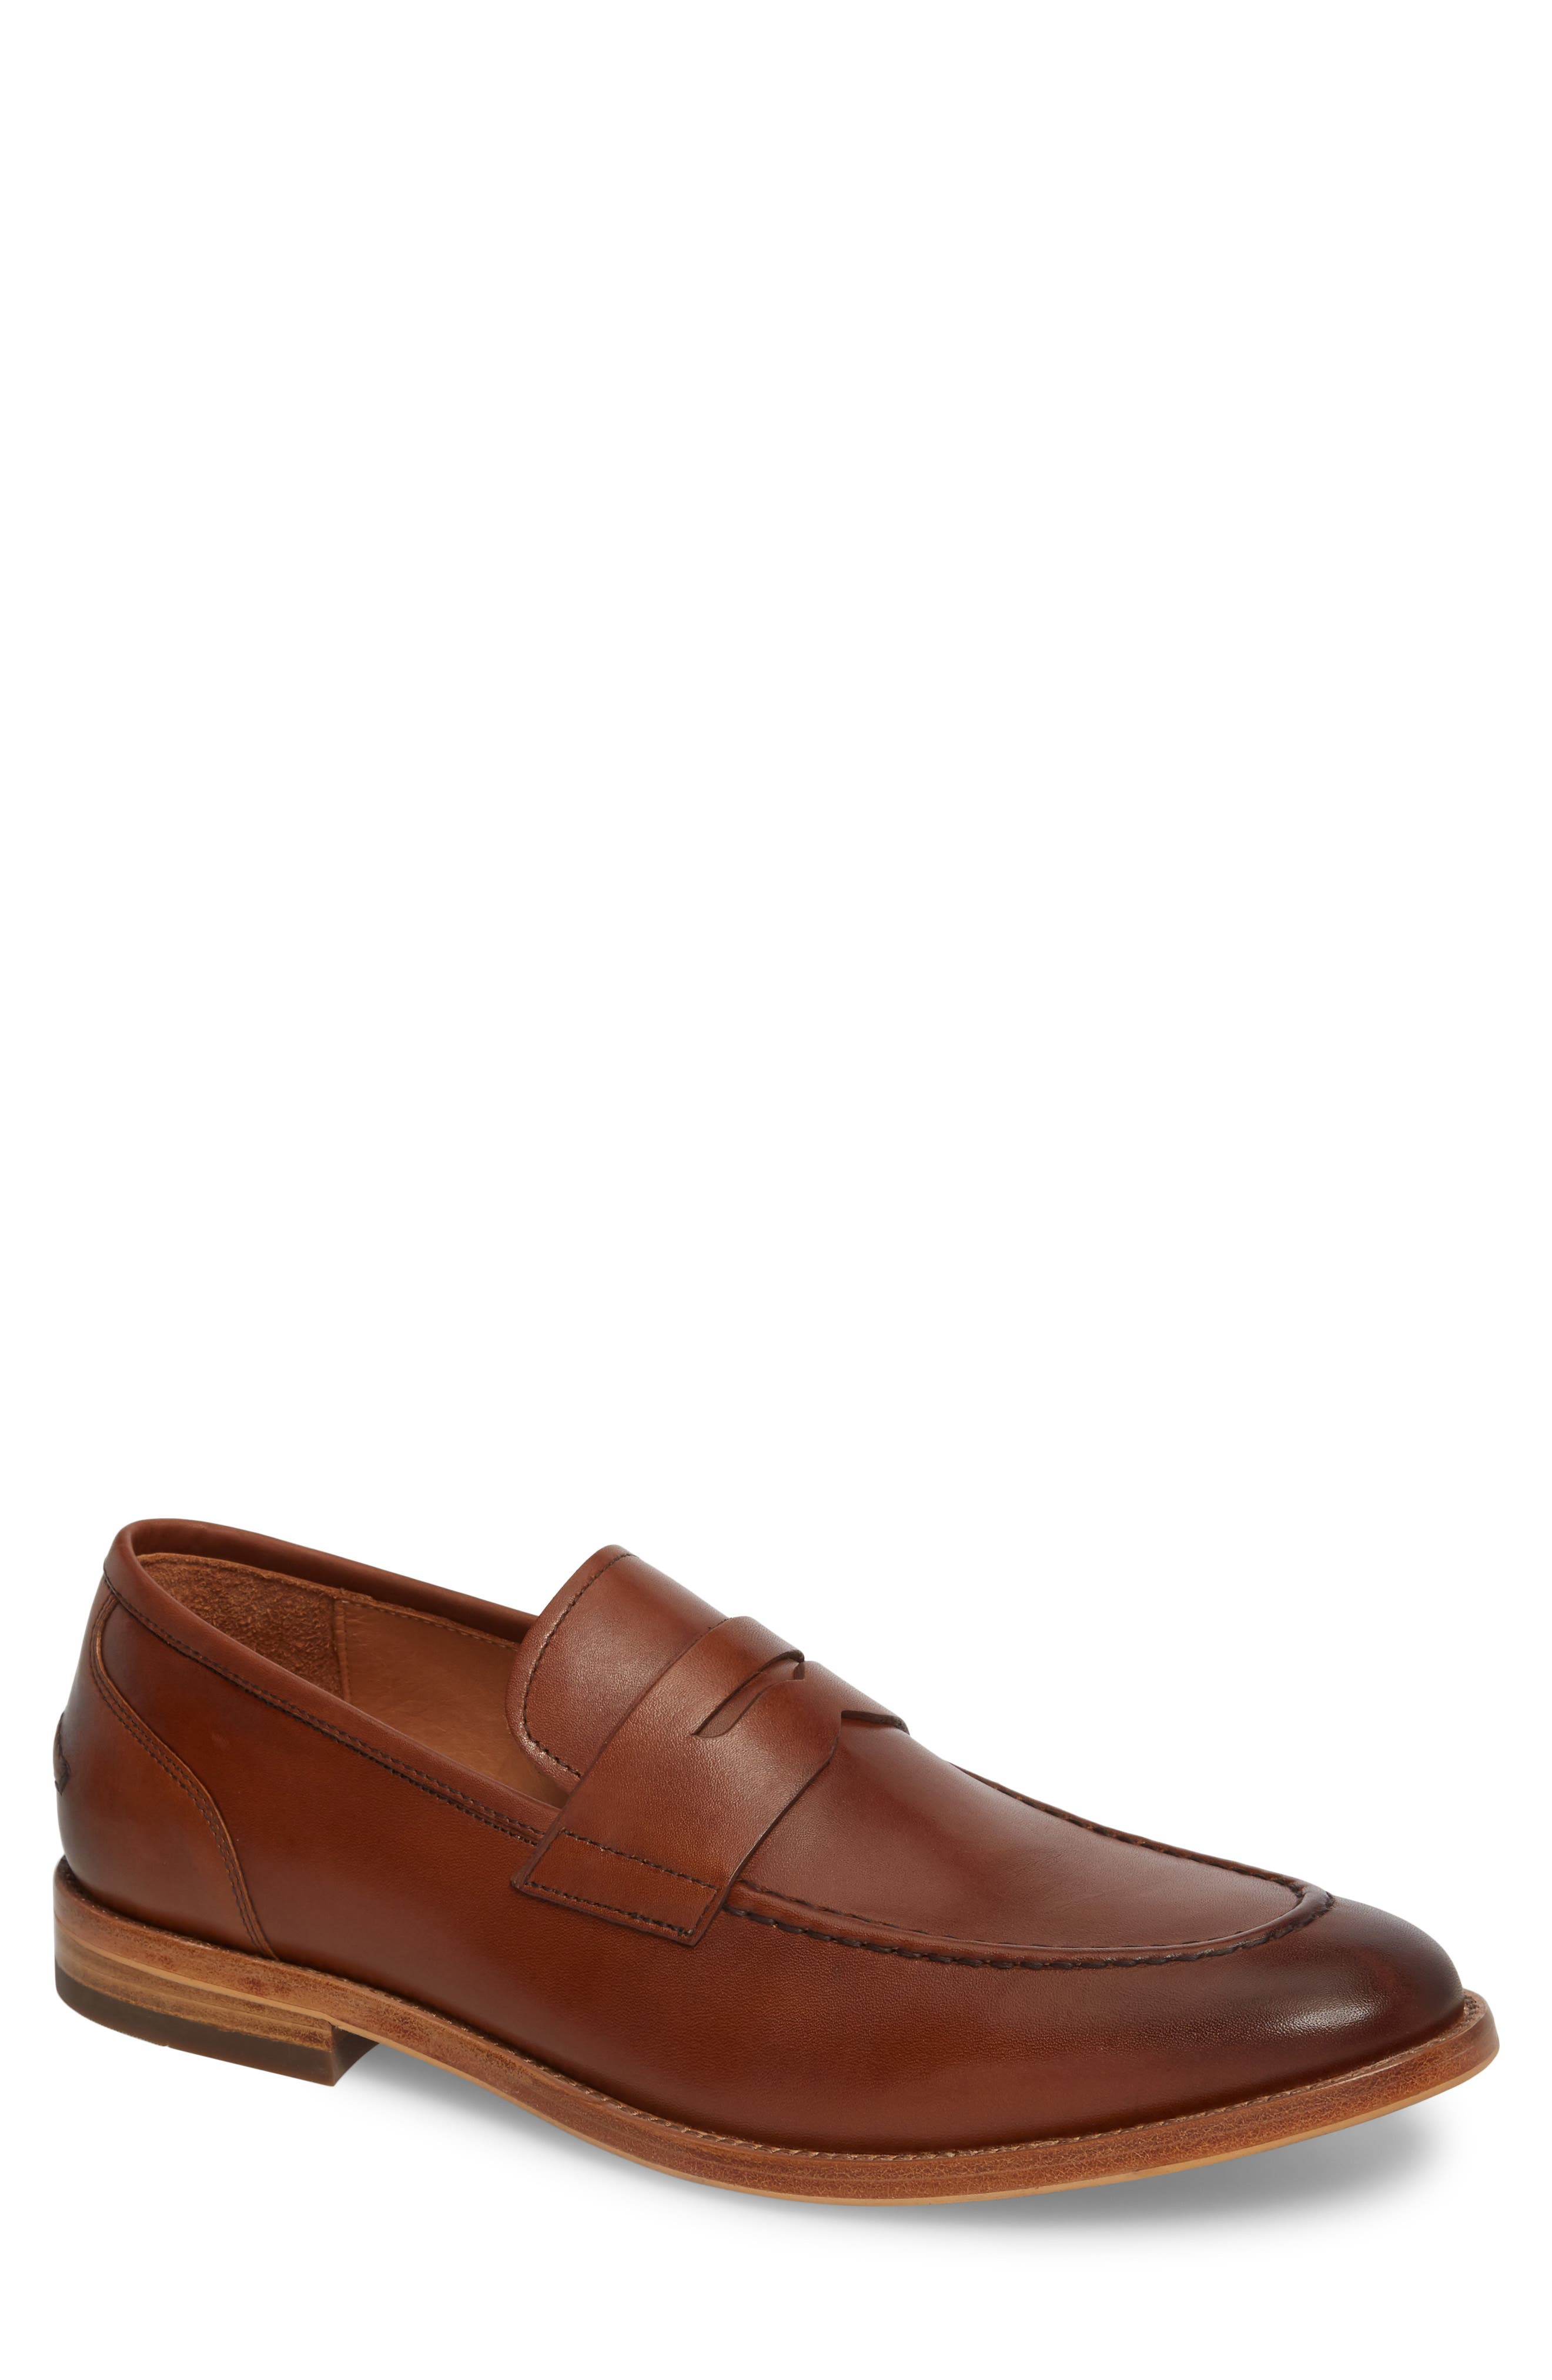 Lucas Loafer,                             Main thumbnail 1, color,                             Luggage Leather